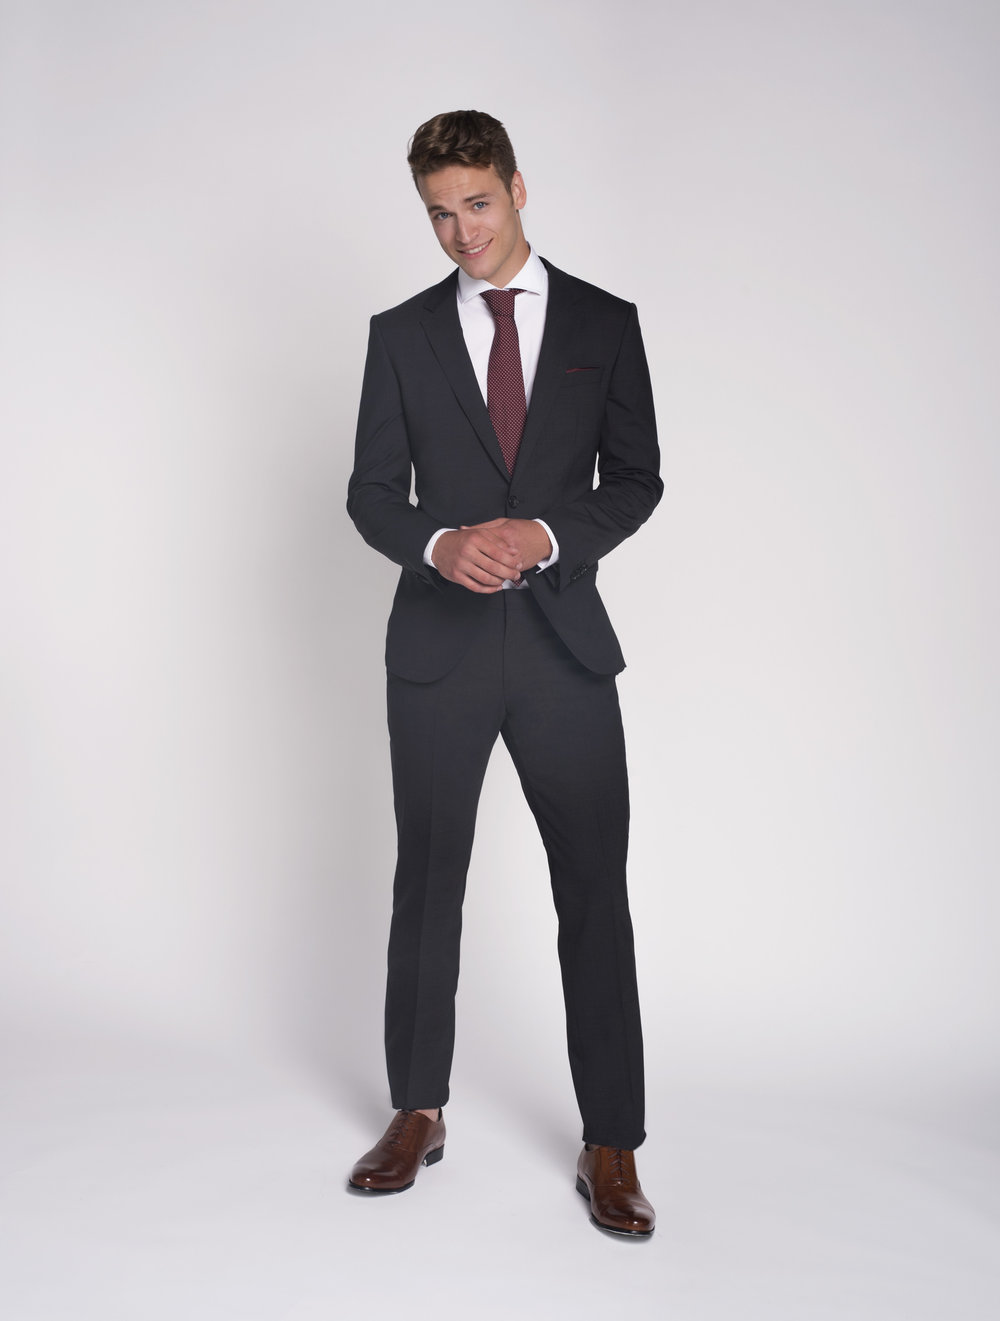 dress - Wear to what to dress professional video